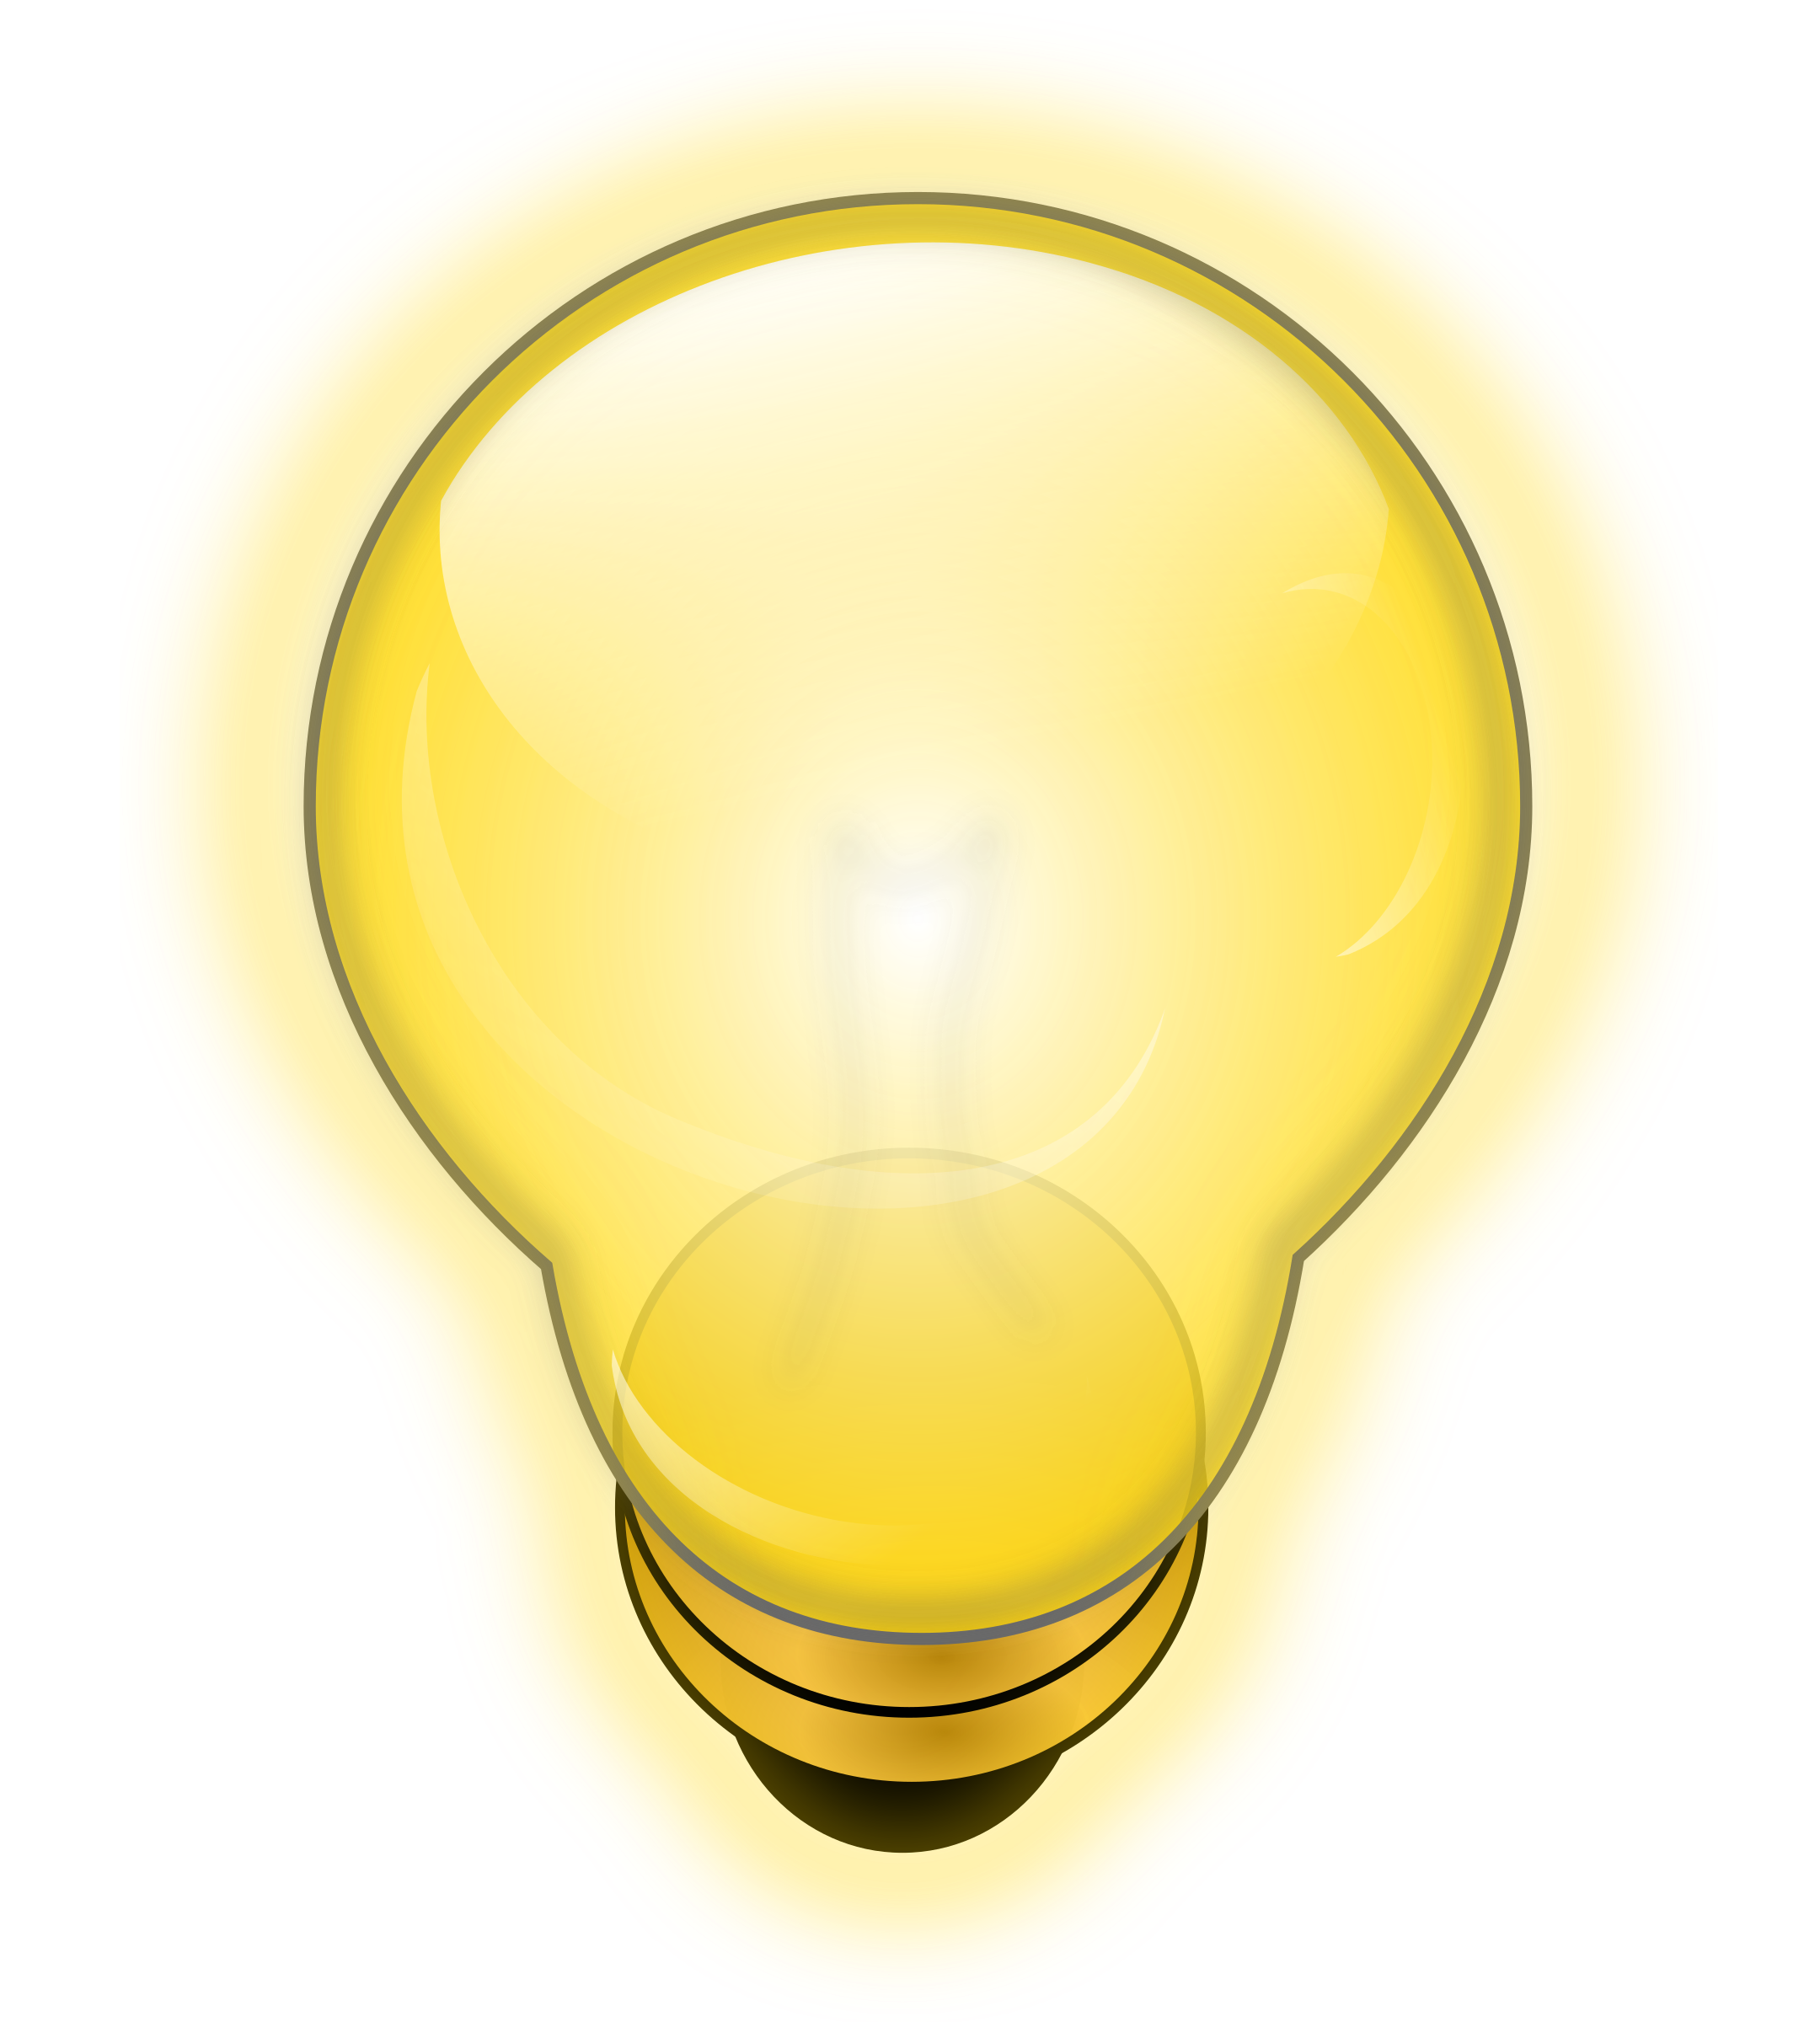 Clipart - Glowing Light Bulb for Light Bulb Animated Gif  186ref